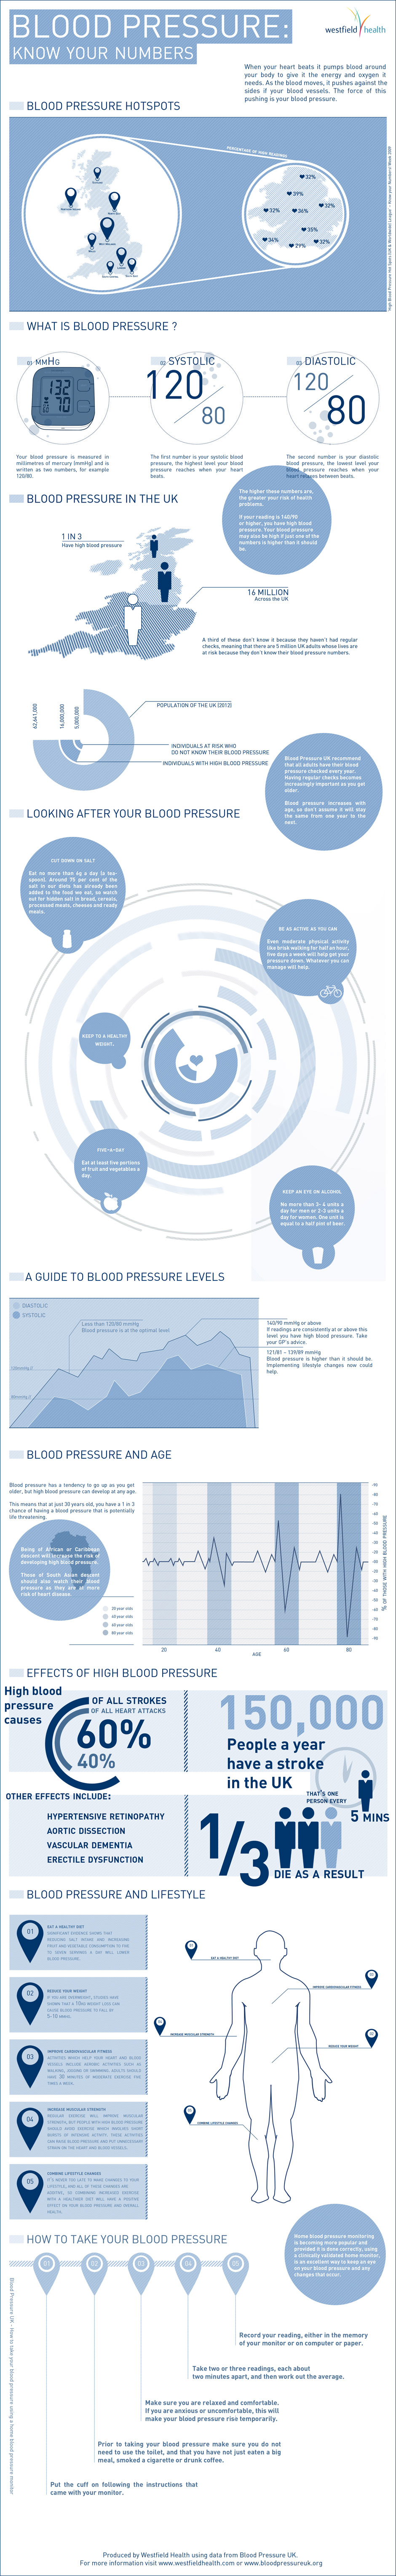 blood-pressure-know-your-numbers_5051dcd73500f